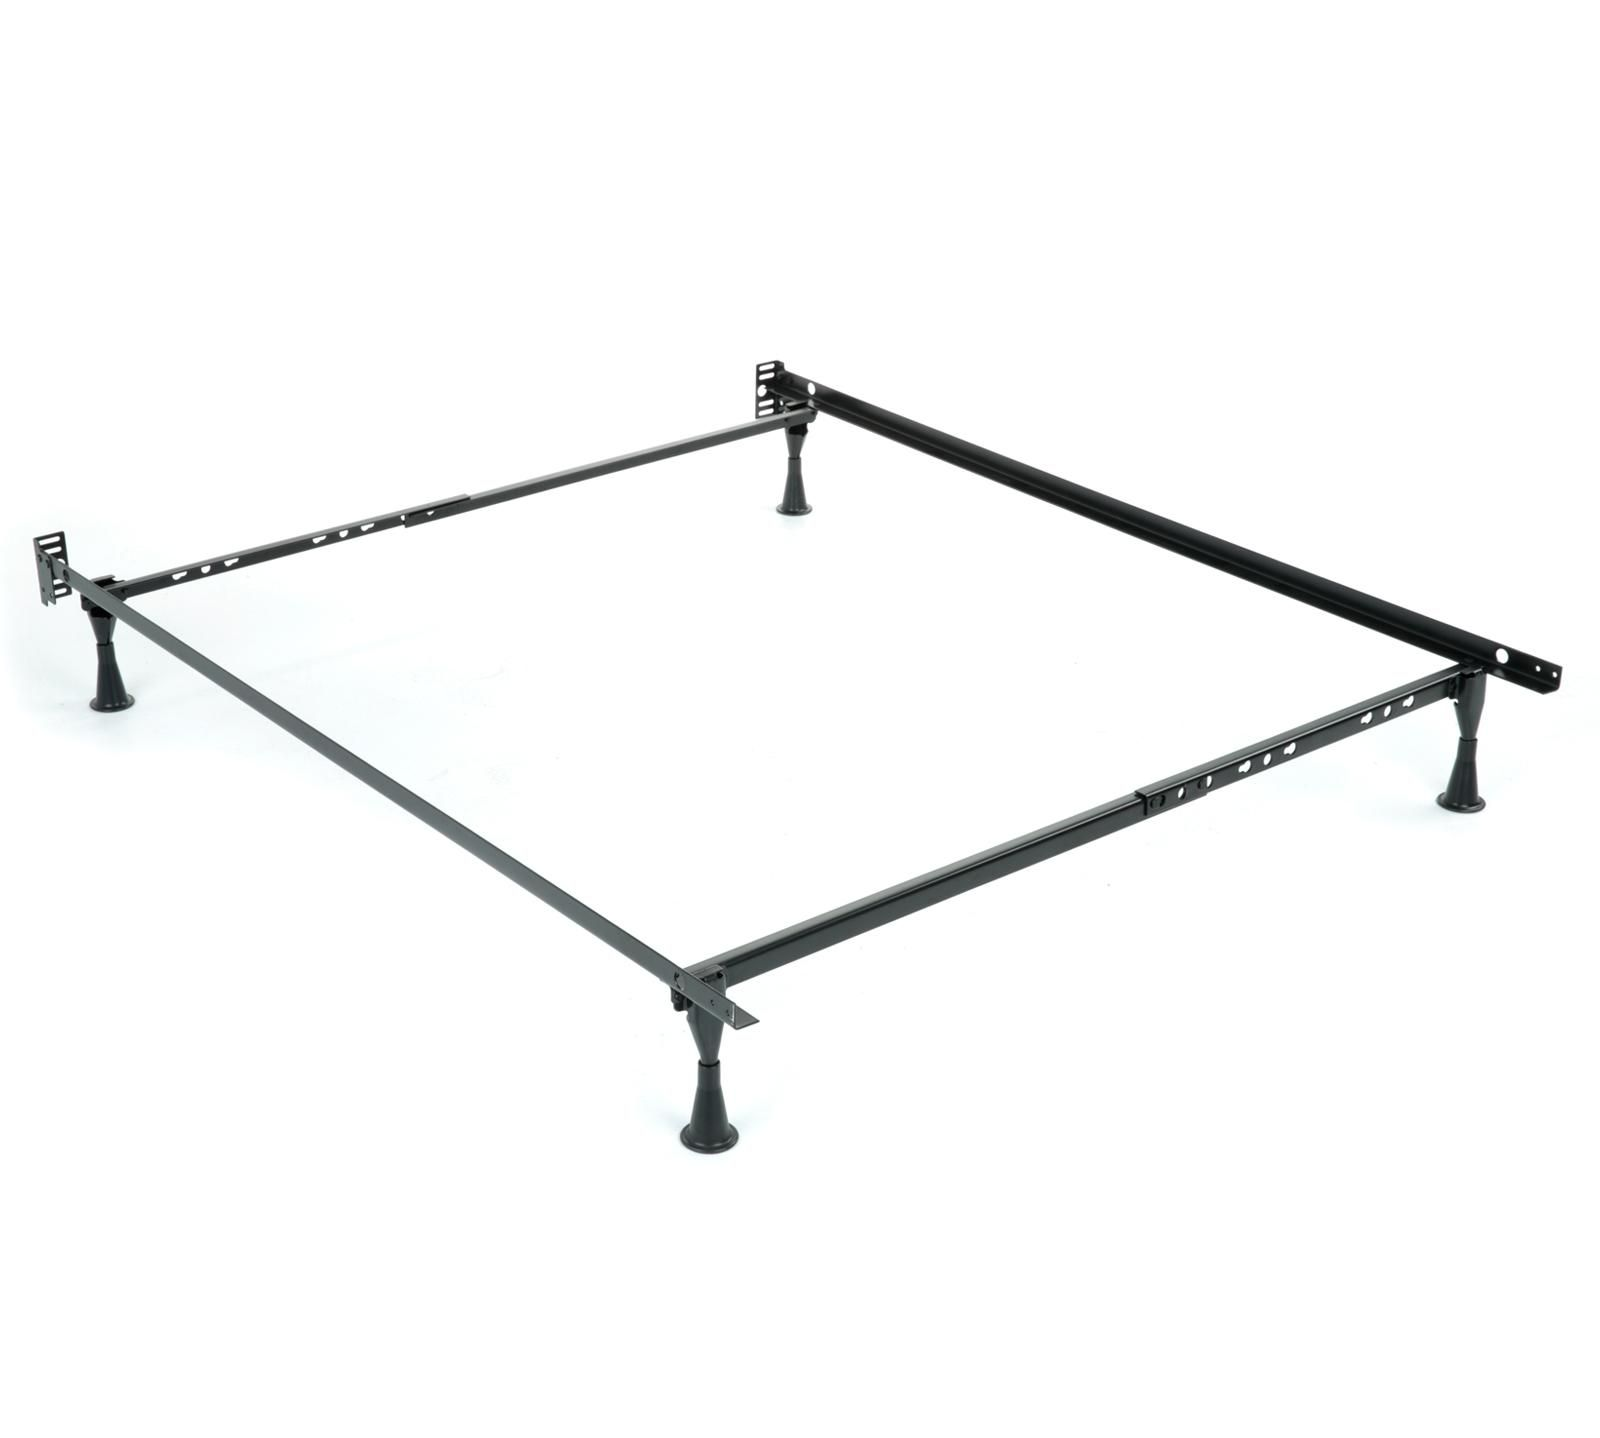 The Leggett And Platt Standard Frame Adjusts To Fit Twin And Full Size Mattresses And With No Tools Requi Adjustable Bed Frame Leggett And Platt Diy Bed Frame